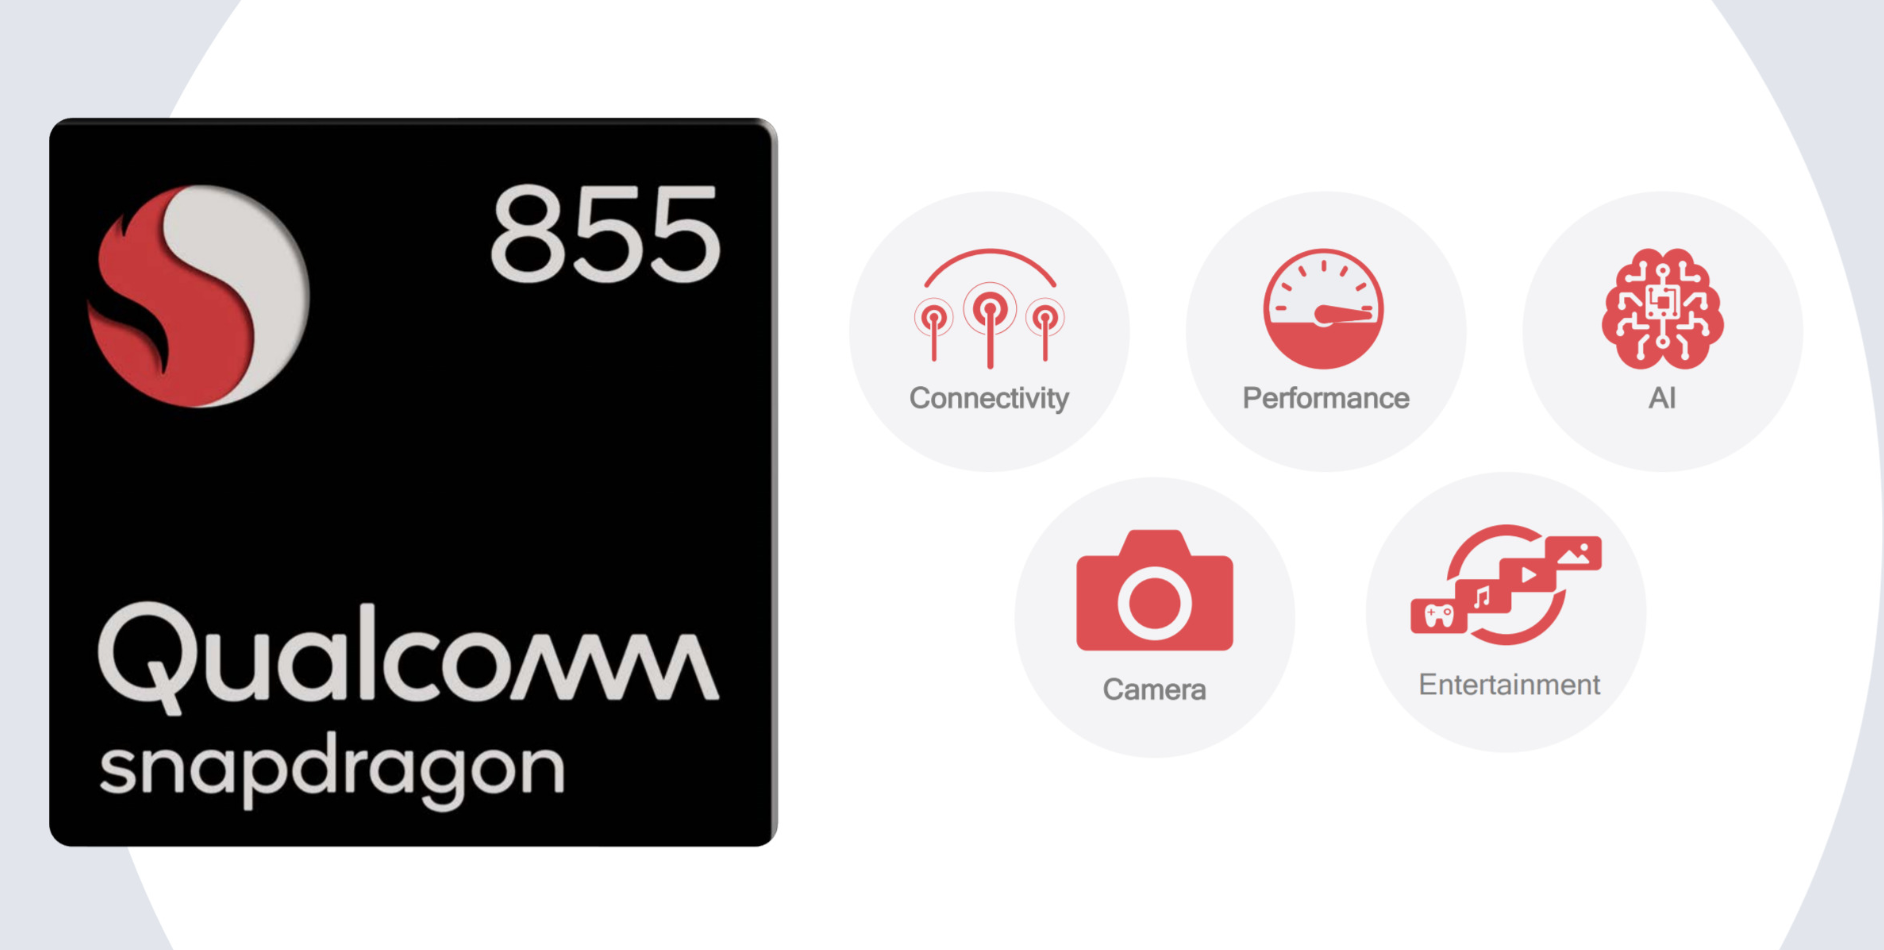 What are the main features of the new Snapdragon 855 from